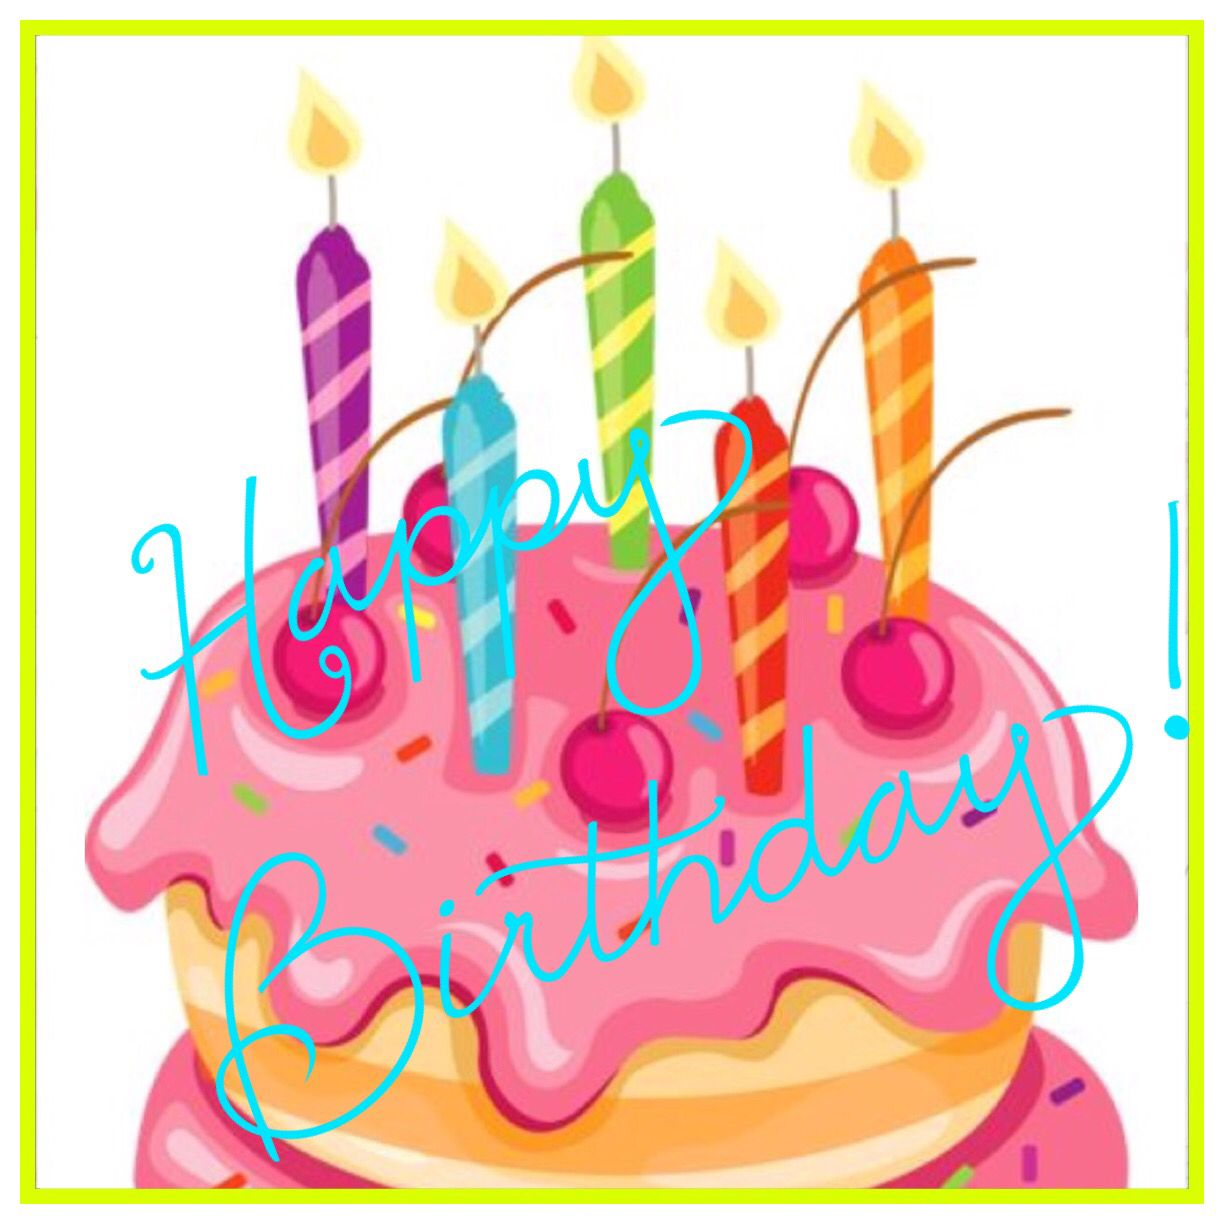 pin by grammie newman on birthday pinterest happy birthday rh pinterest com Belated Birthday Clip Art Microsoft Maxine Belated Birthday Clip Art